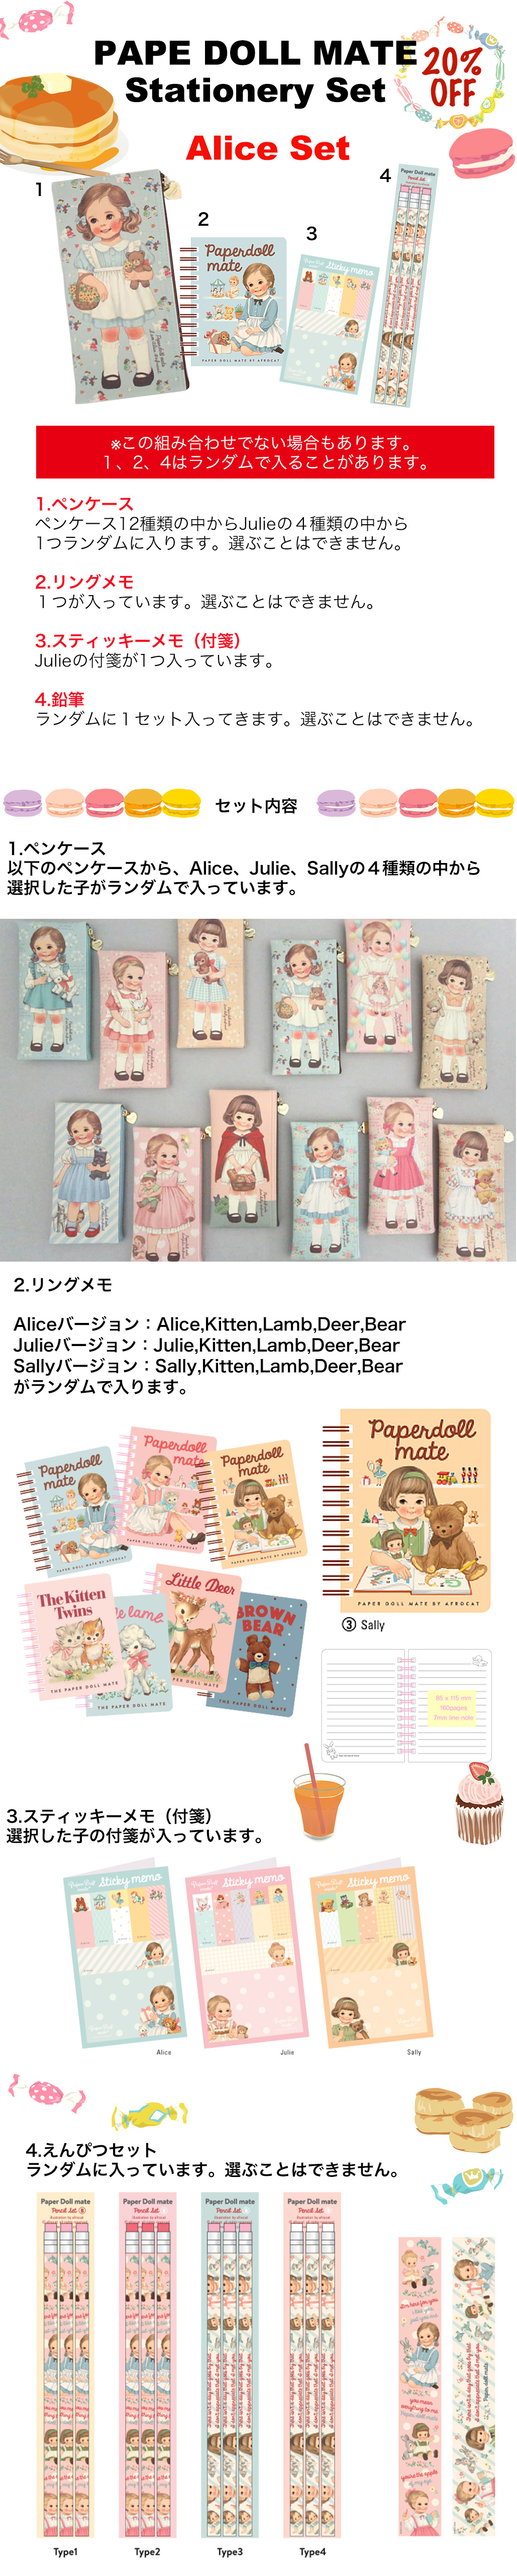 【20%OFF】ペーパードールメイトStationery Set Alice